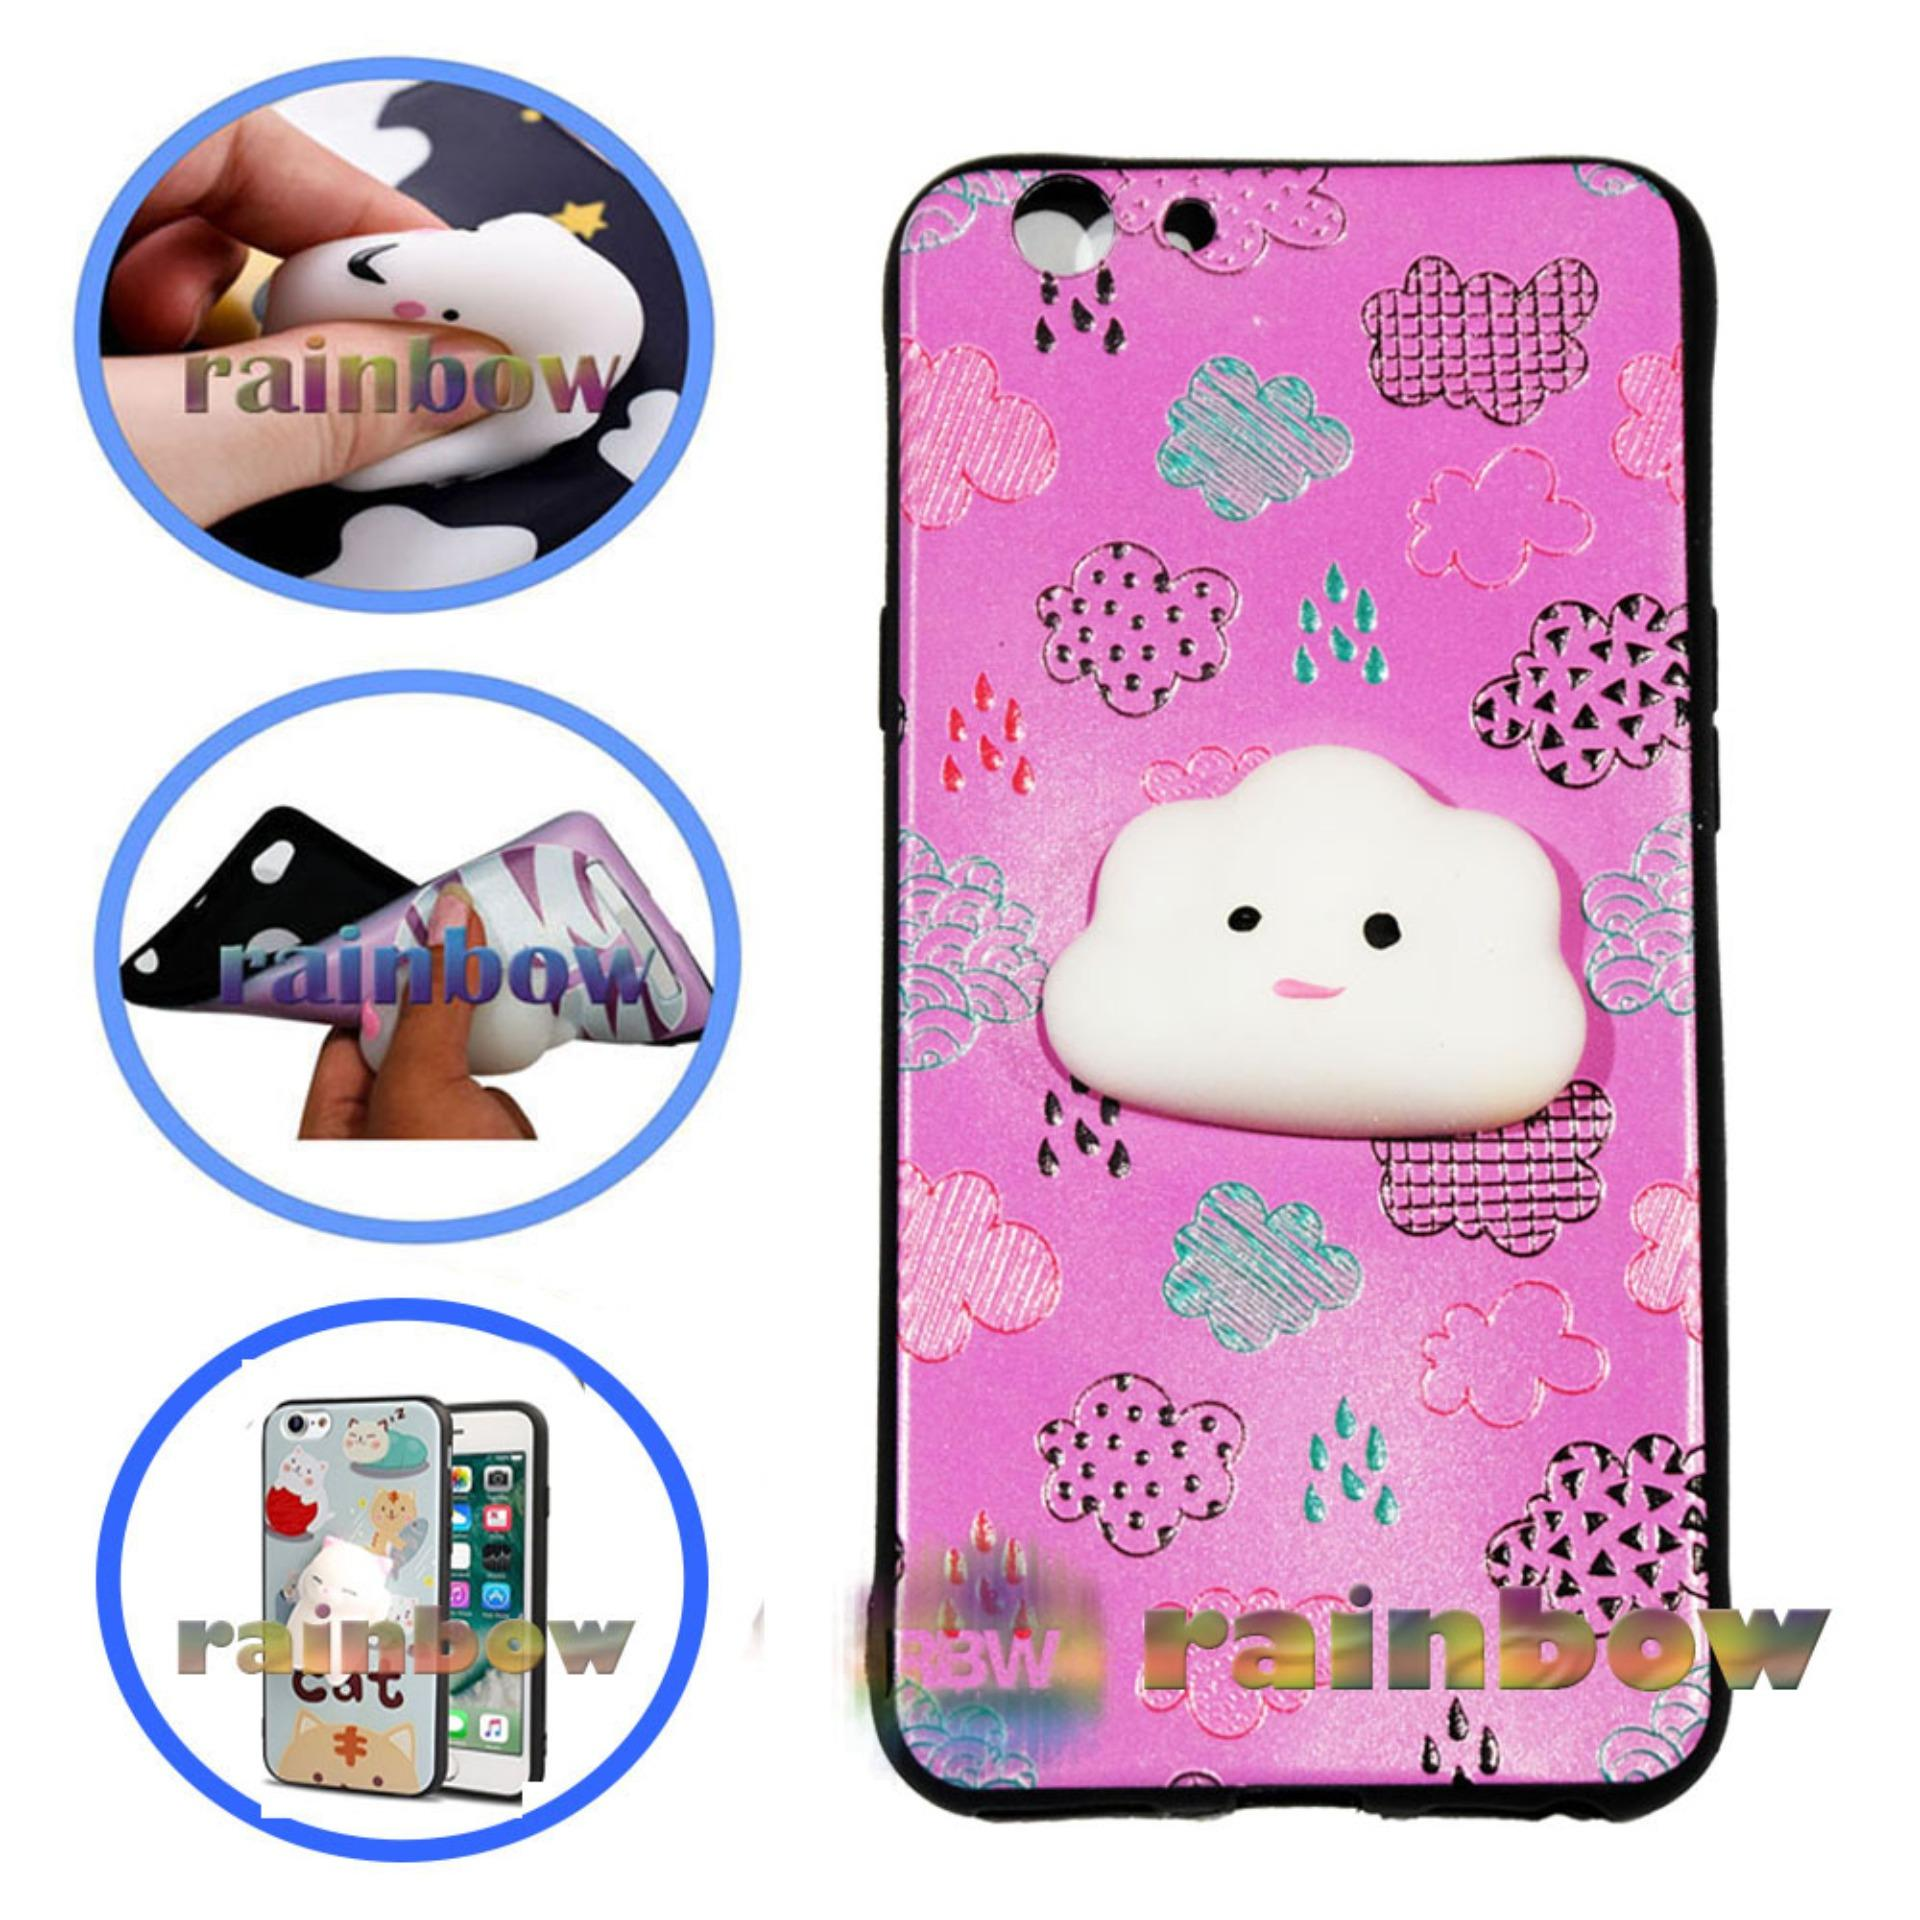 Rainbow SQUISHY Case Oppo F1s Selfie Expert A59 Squishy Cloud Pinky / Custom Case Squeeze Oppo F1S A59 / Case Silikon 3D Squishy Oppo A59 / Silicone 4D Boneka / Case Unik / Casing Oppo - Awan